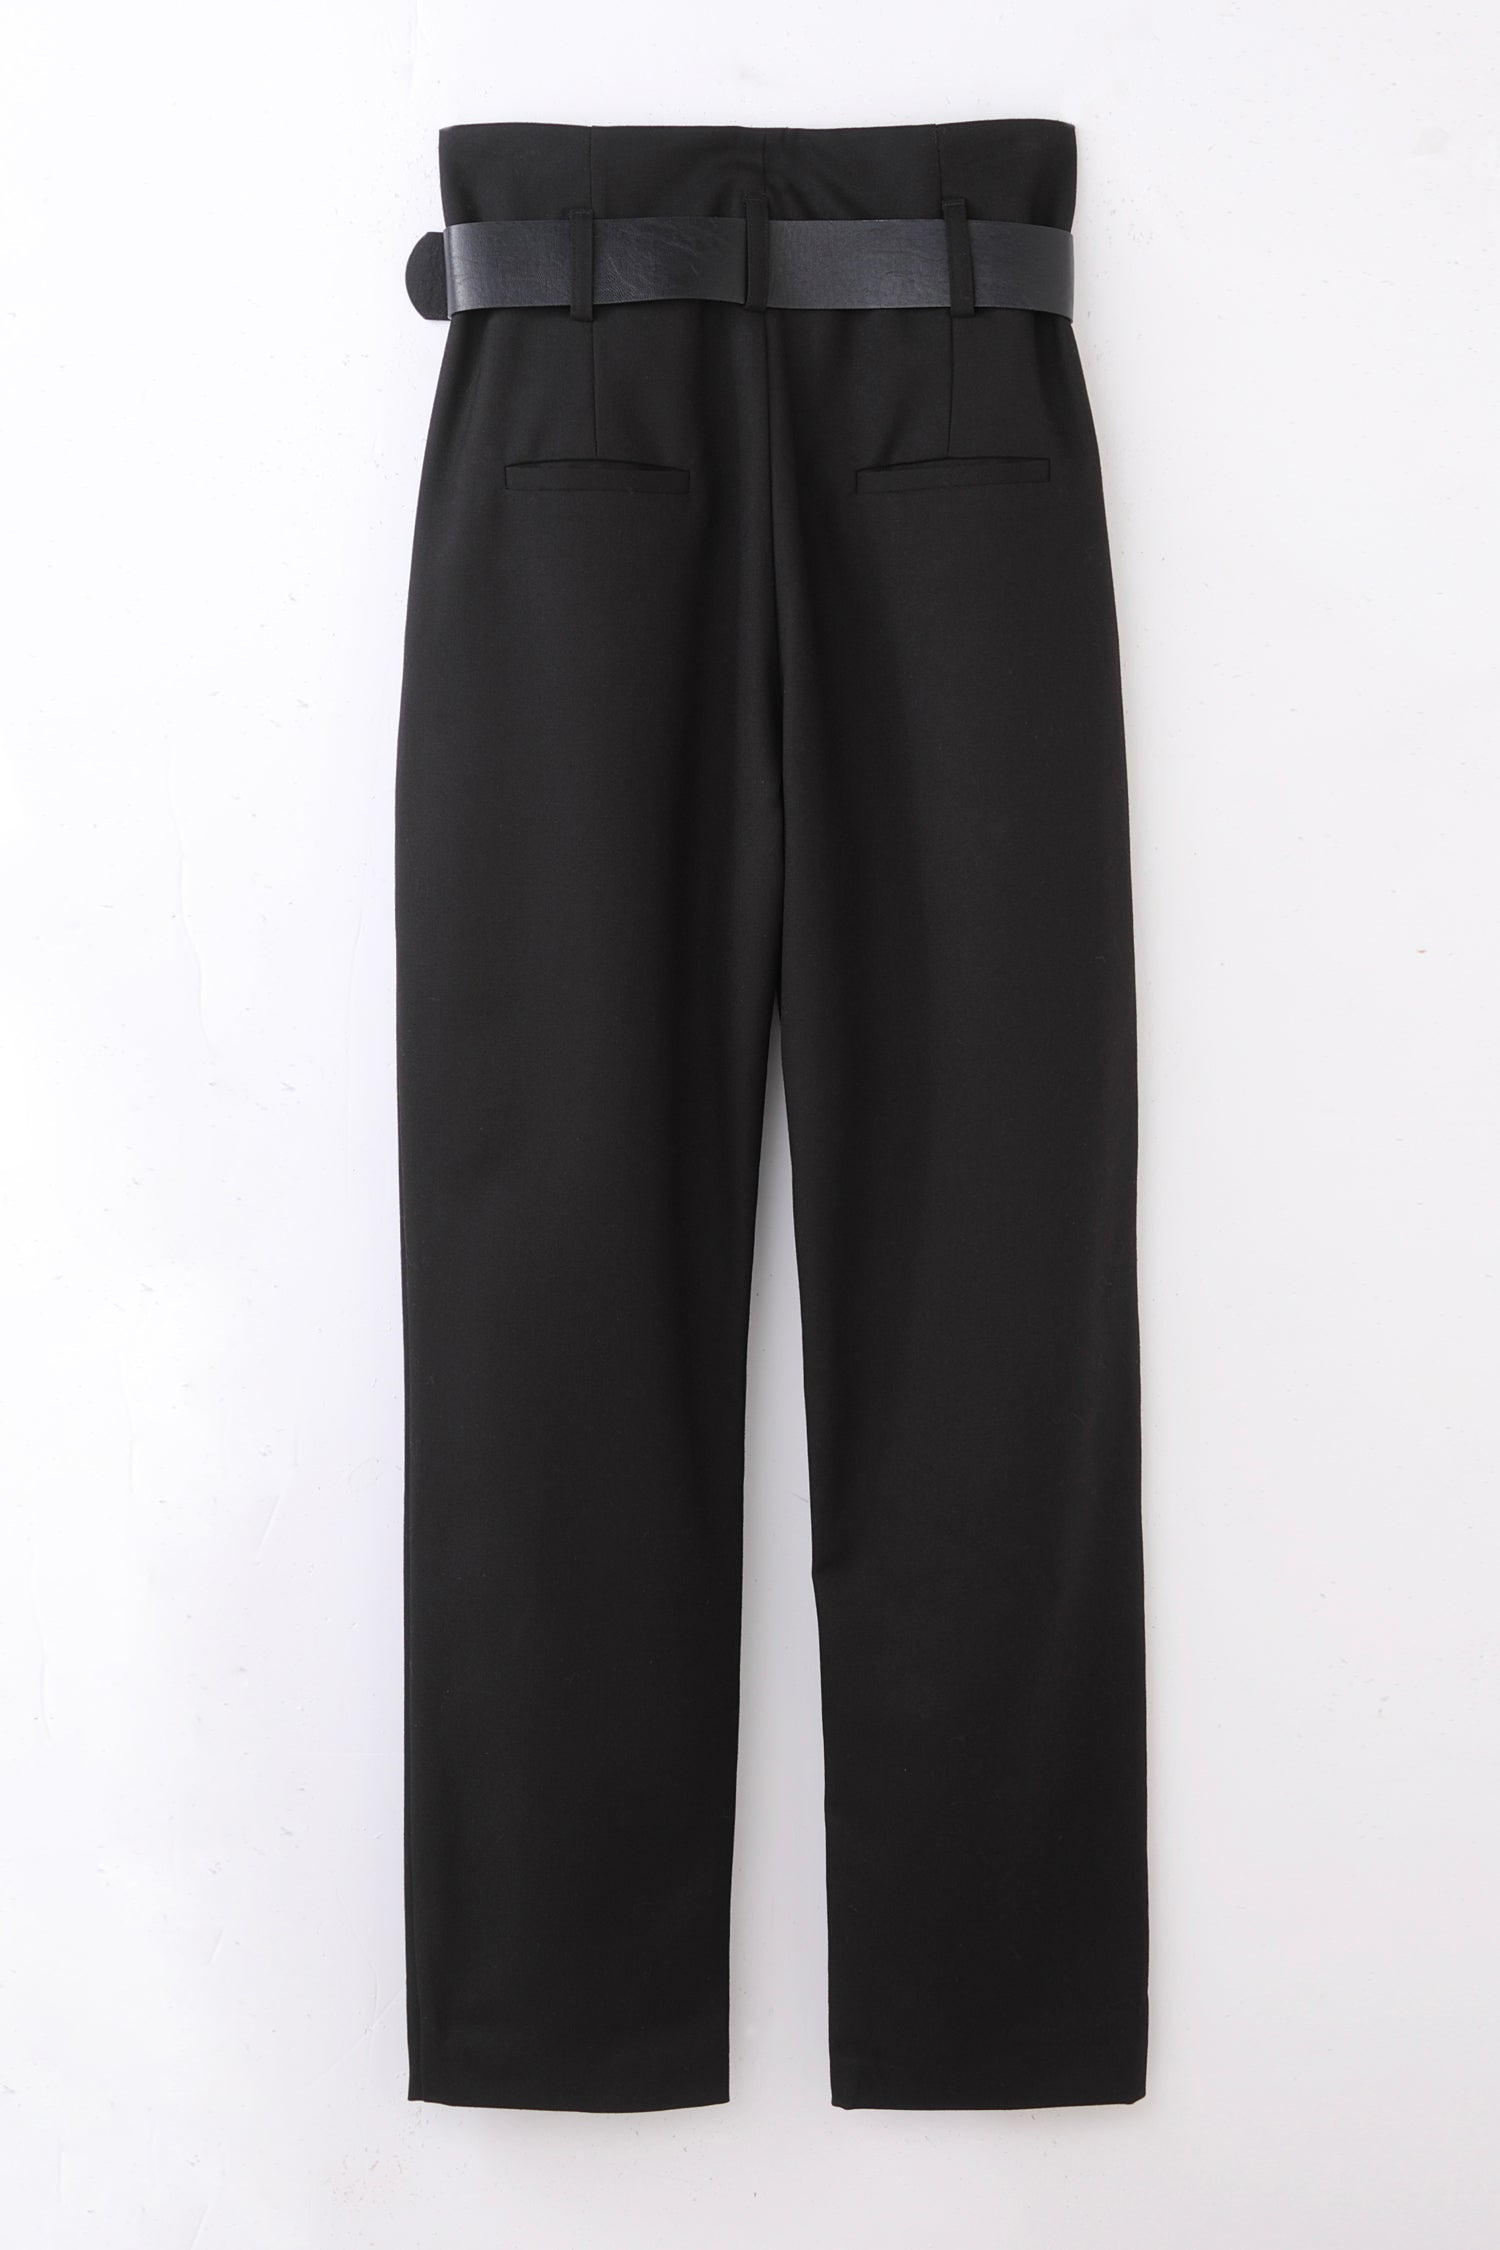 high waist pants -black-